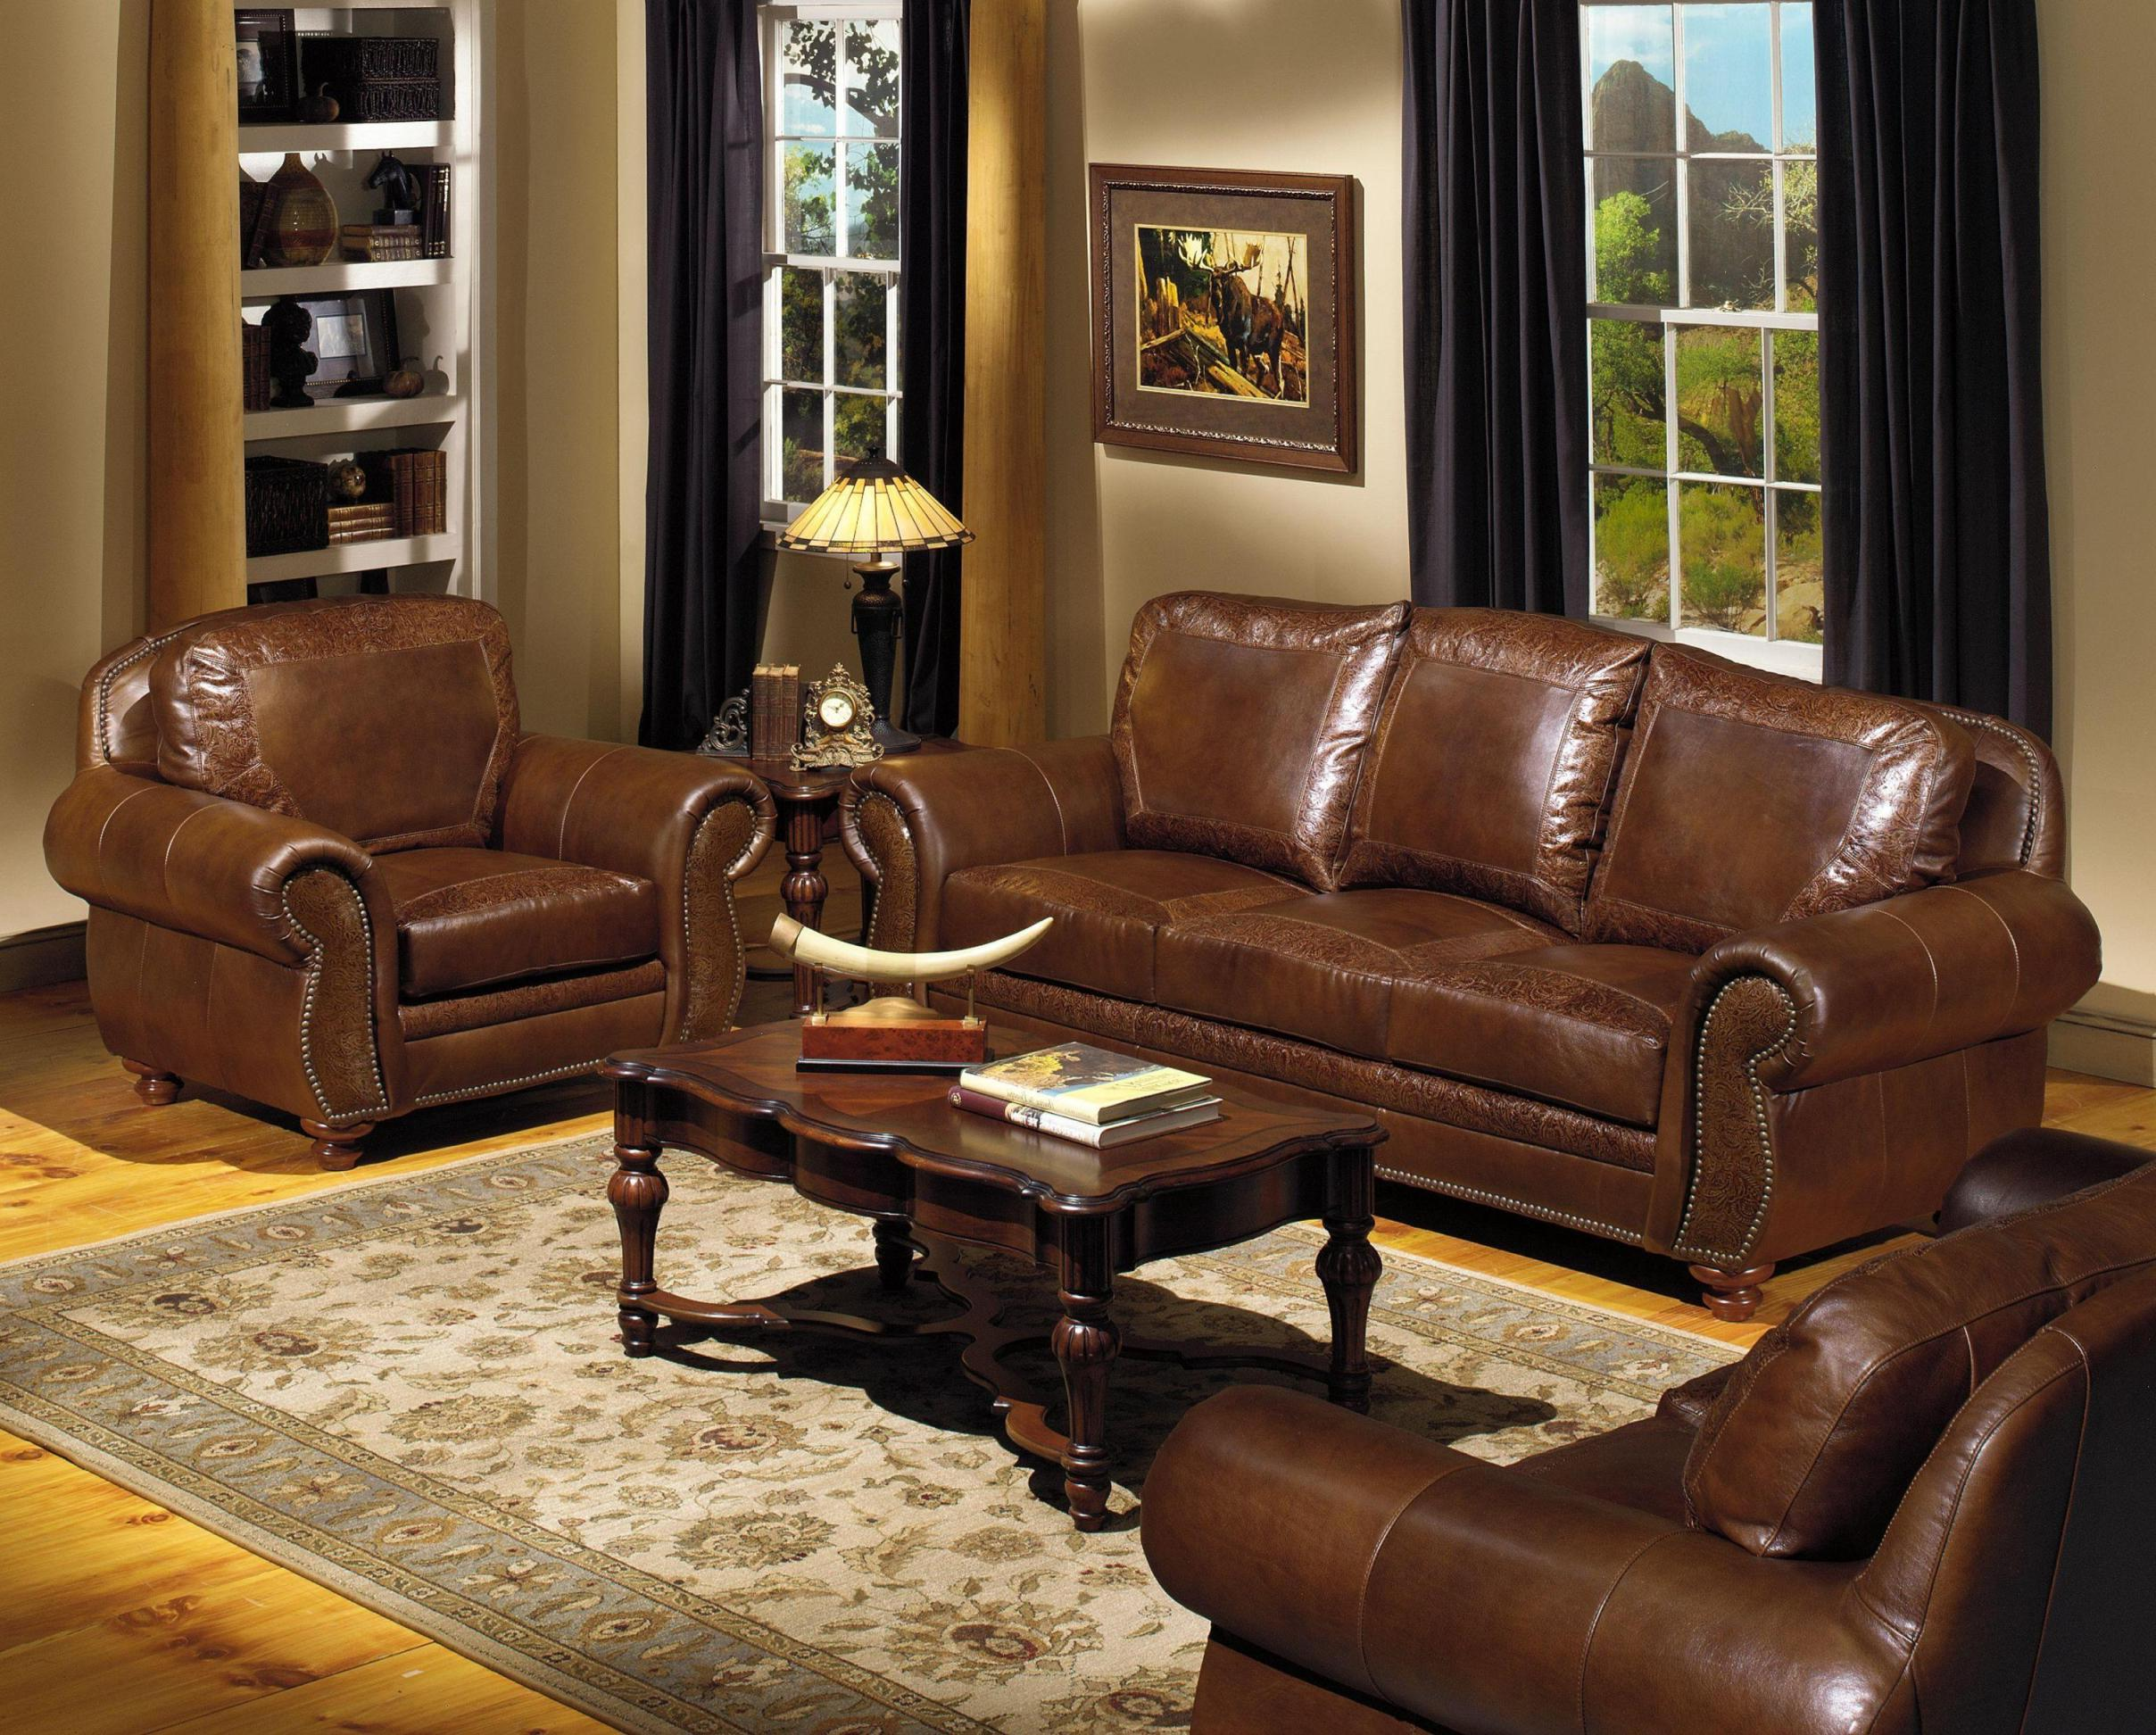 Living Room Furniture: Cook Brothers Living Room Sets